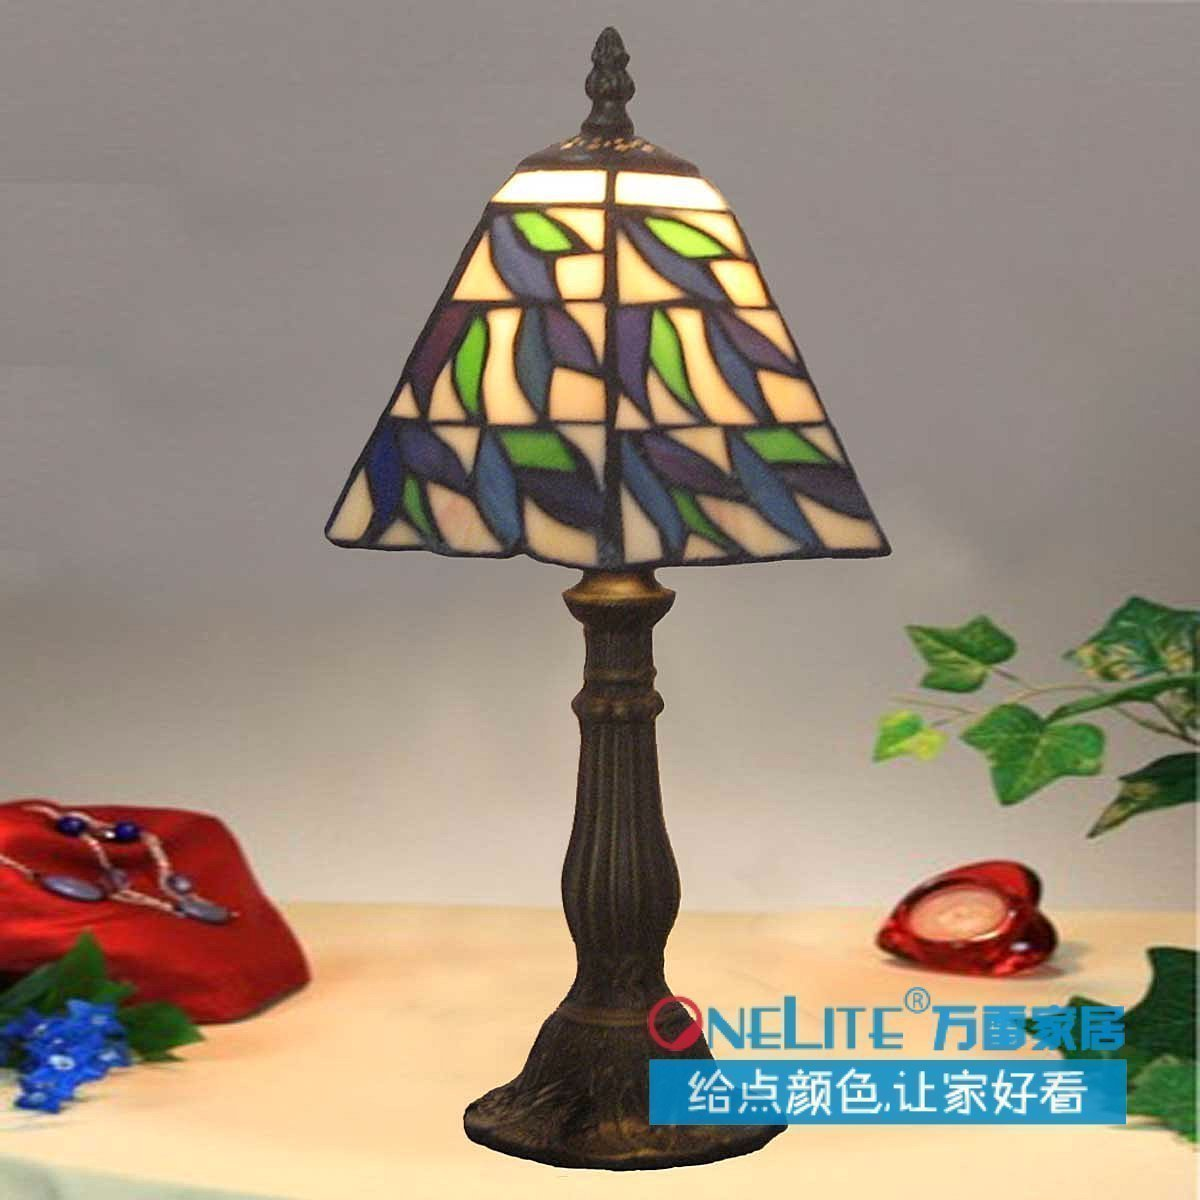 China red glass table lamp china glass table lamp - 2016 Direct Selling Iron Glass Table Lamps Crystal Table Lamp New Arrival 8 Tiffany Lighting Bedroom